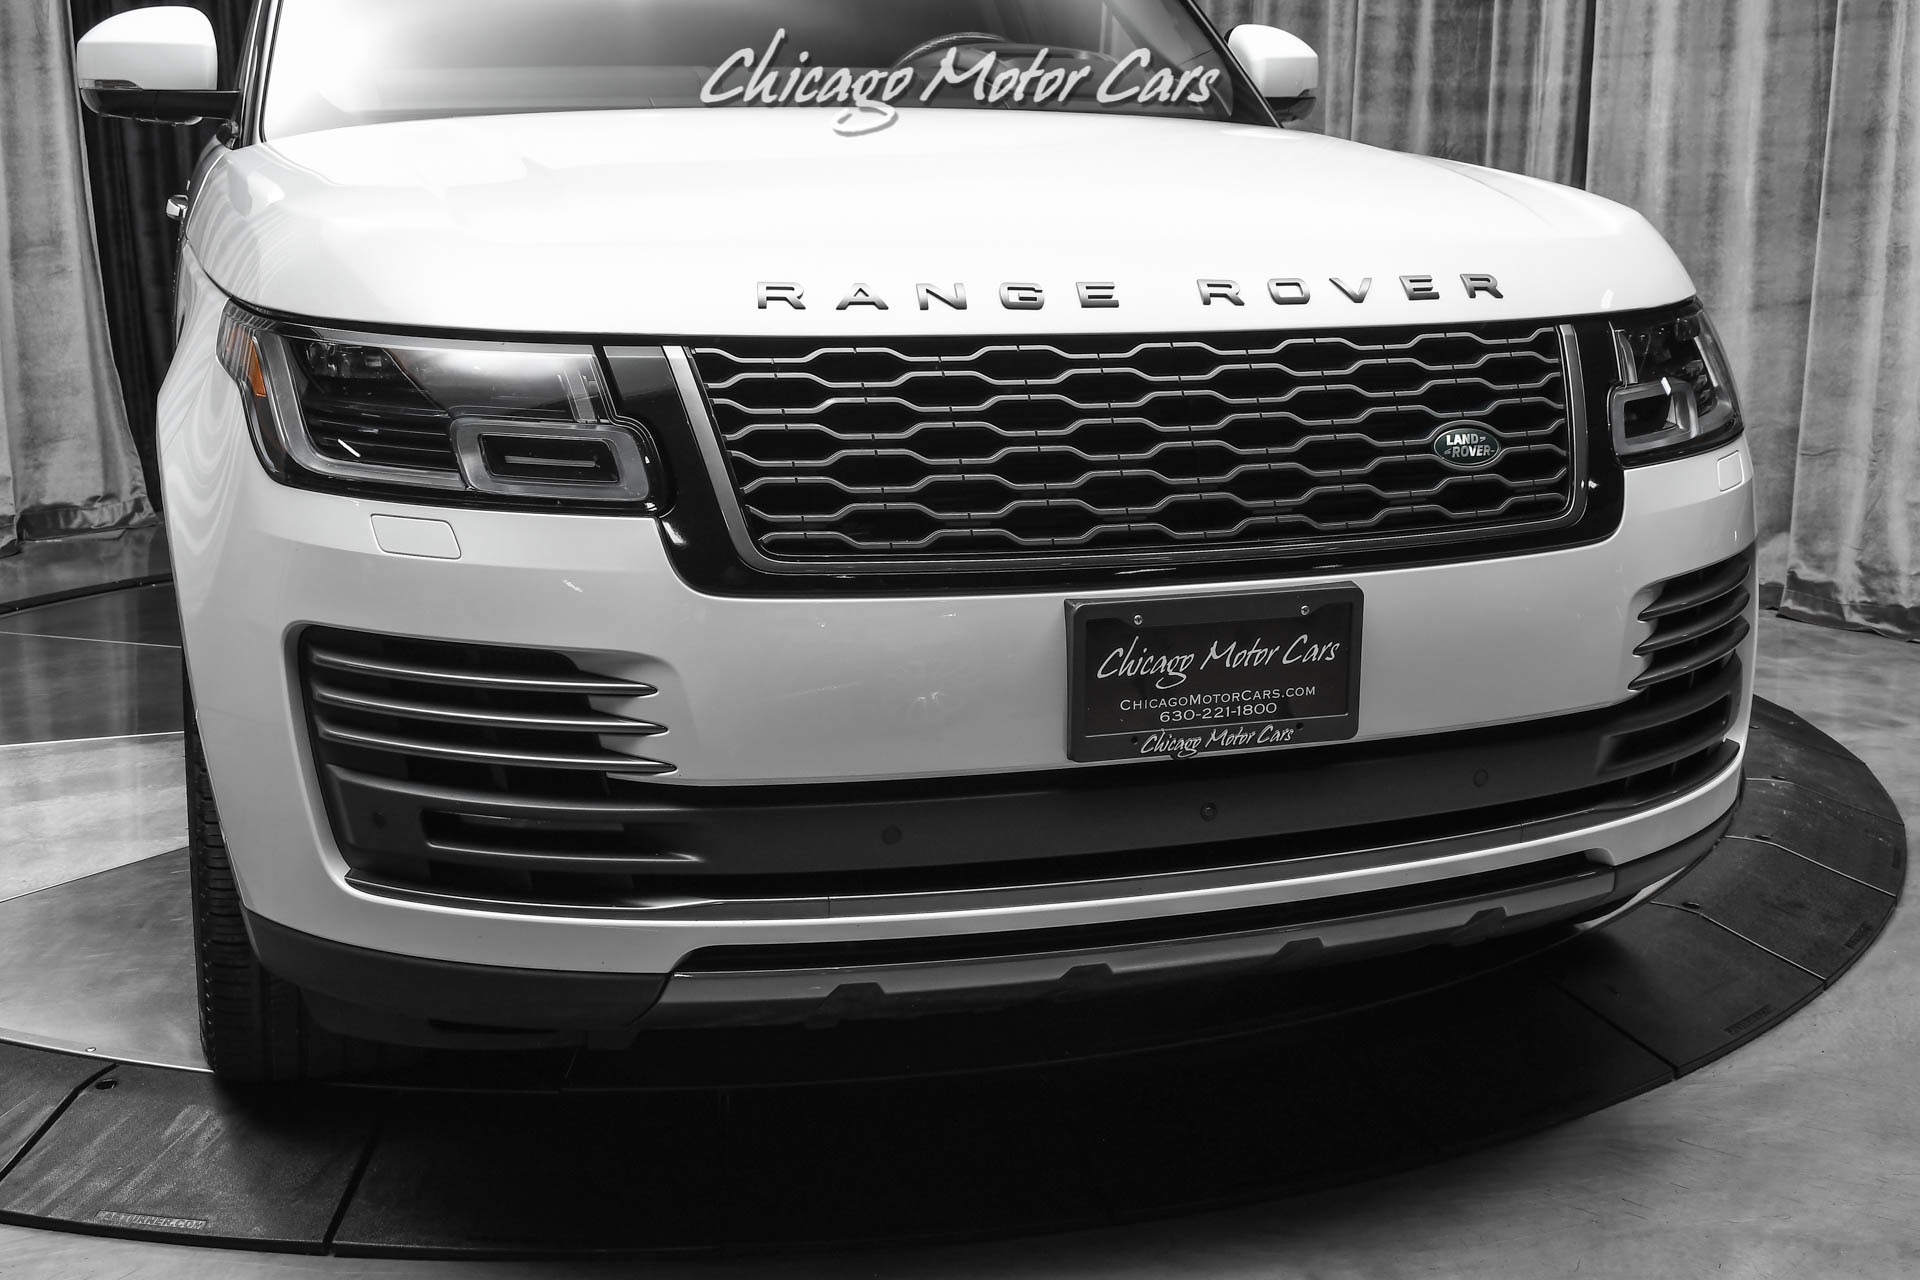 Used-2020-Land-Rover-Range-Rover-Autobiography-LWB-Rear-Entertainment-Diamond-Turned-Wheels-Loaded